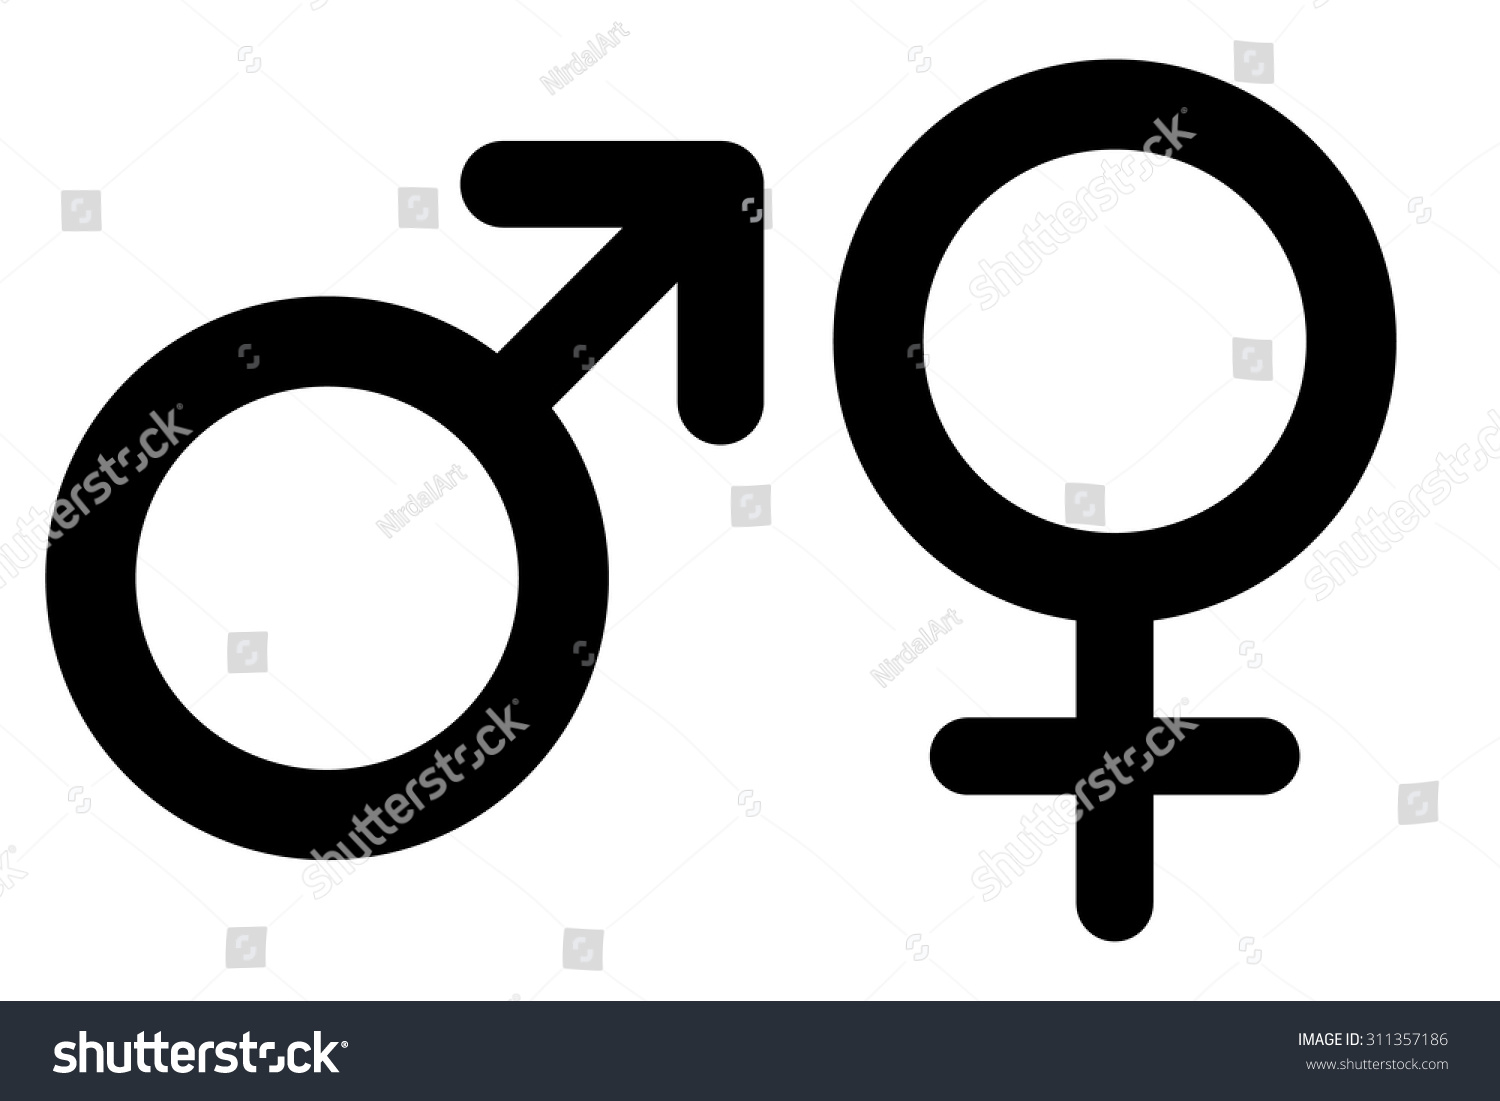 Hd wallpapers male female symbols vector www get free high quality hd wallpapers male female symbols vector buycottarizona